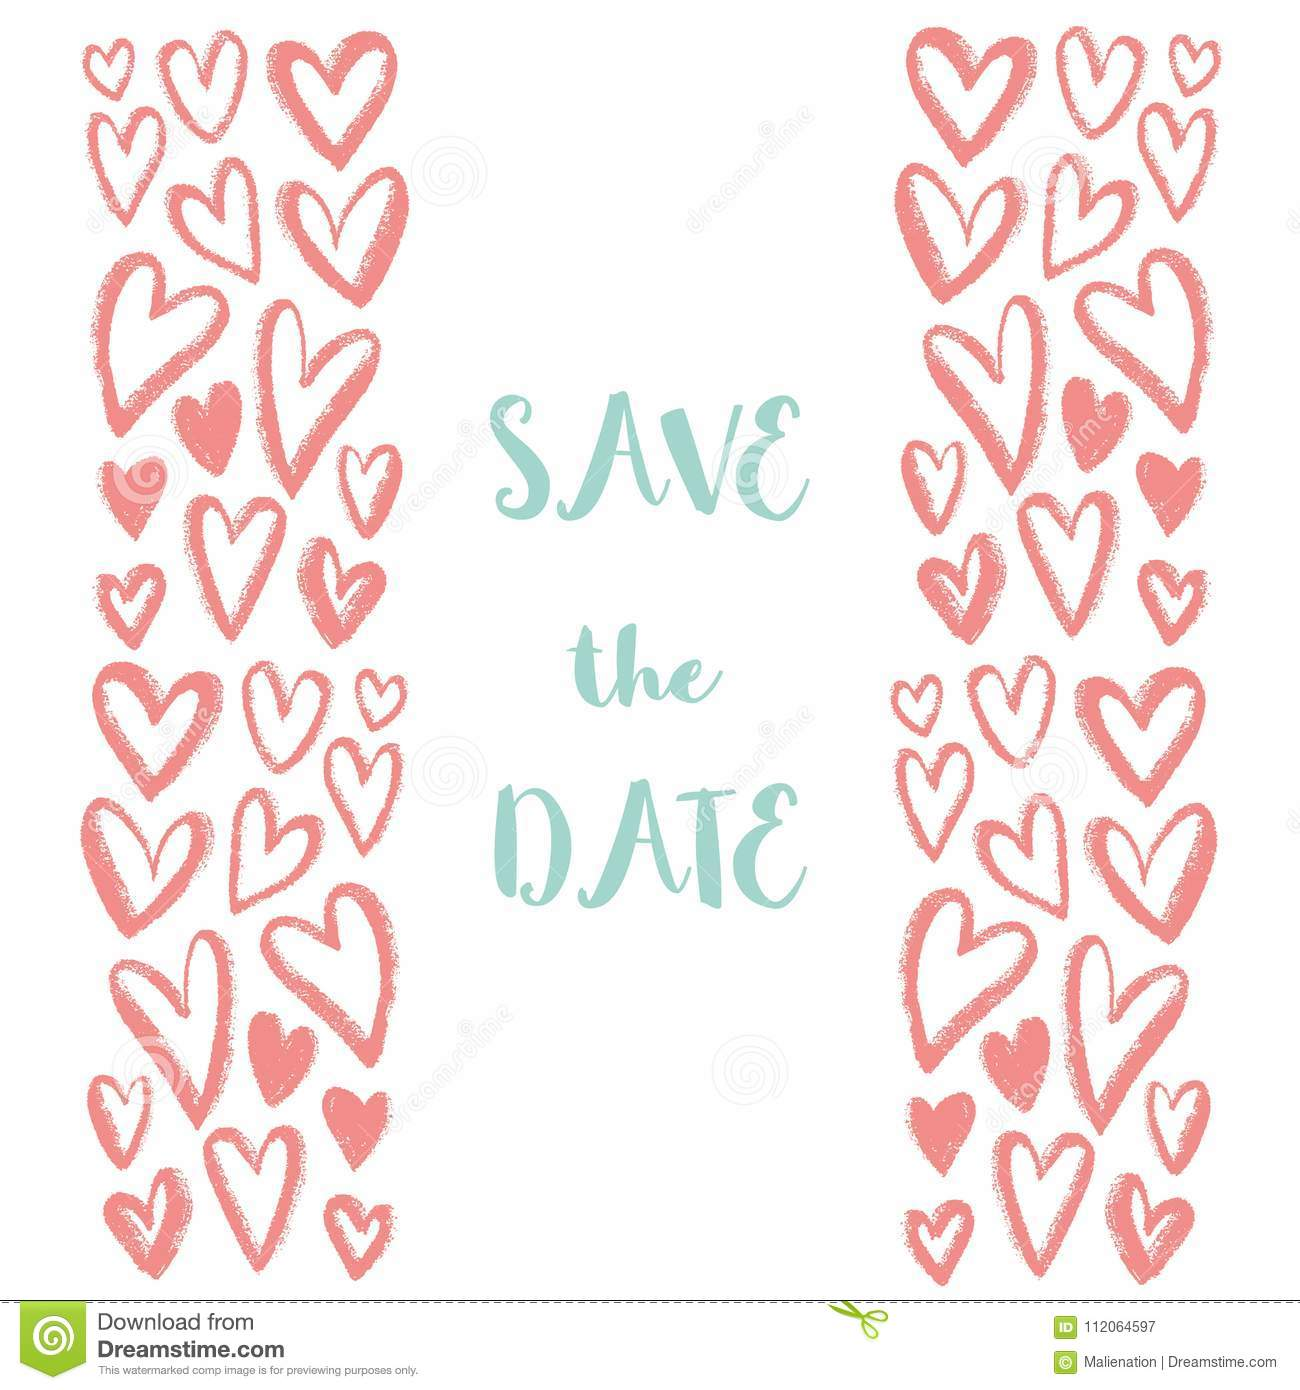 birthday save the date templates free - Bire.1andwap.com